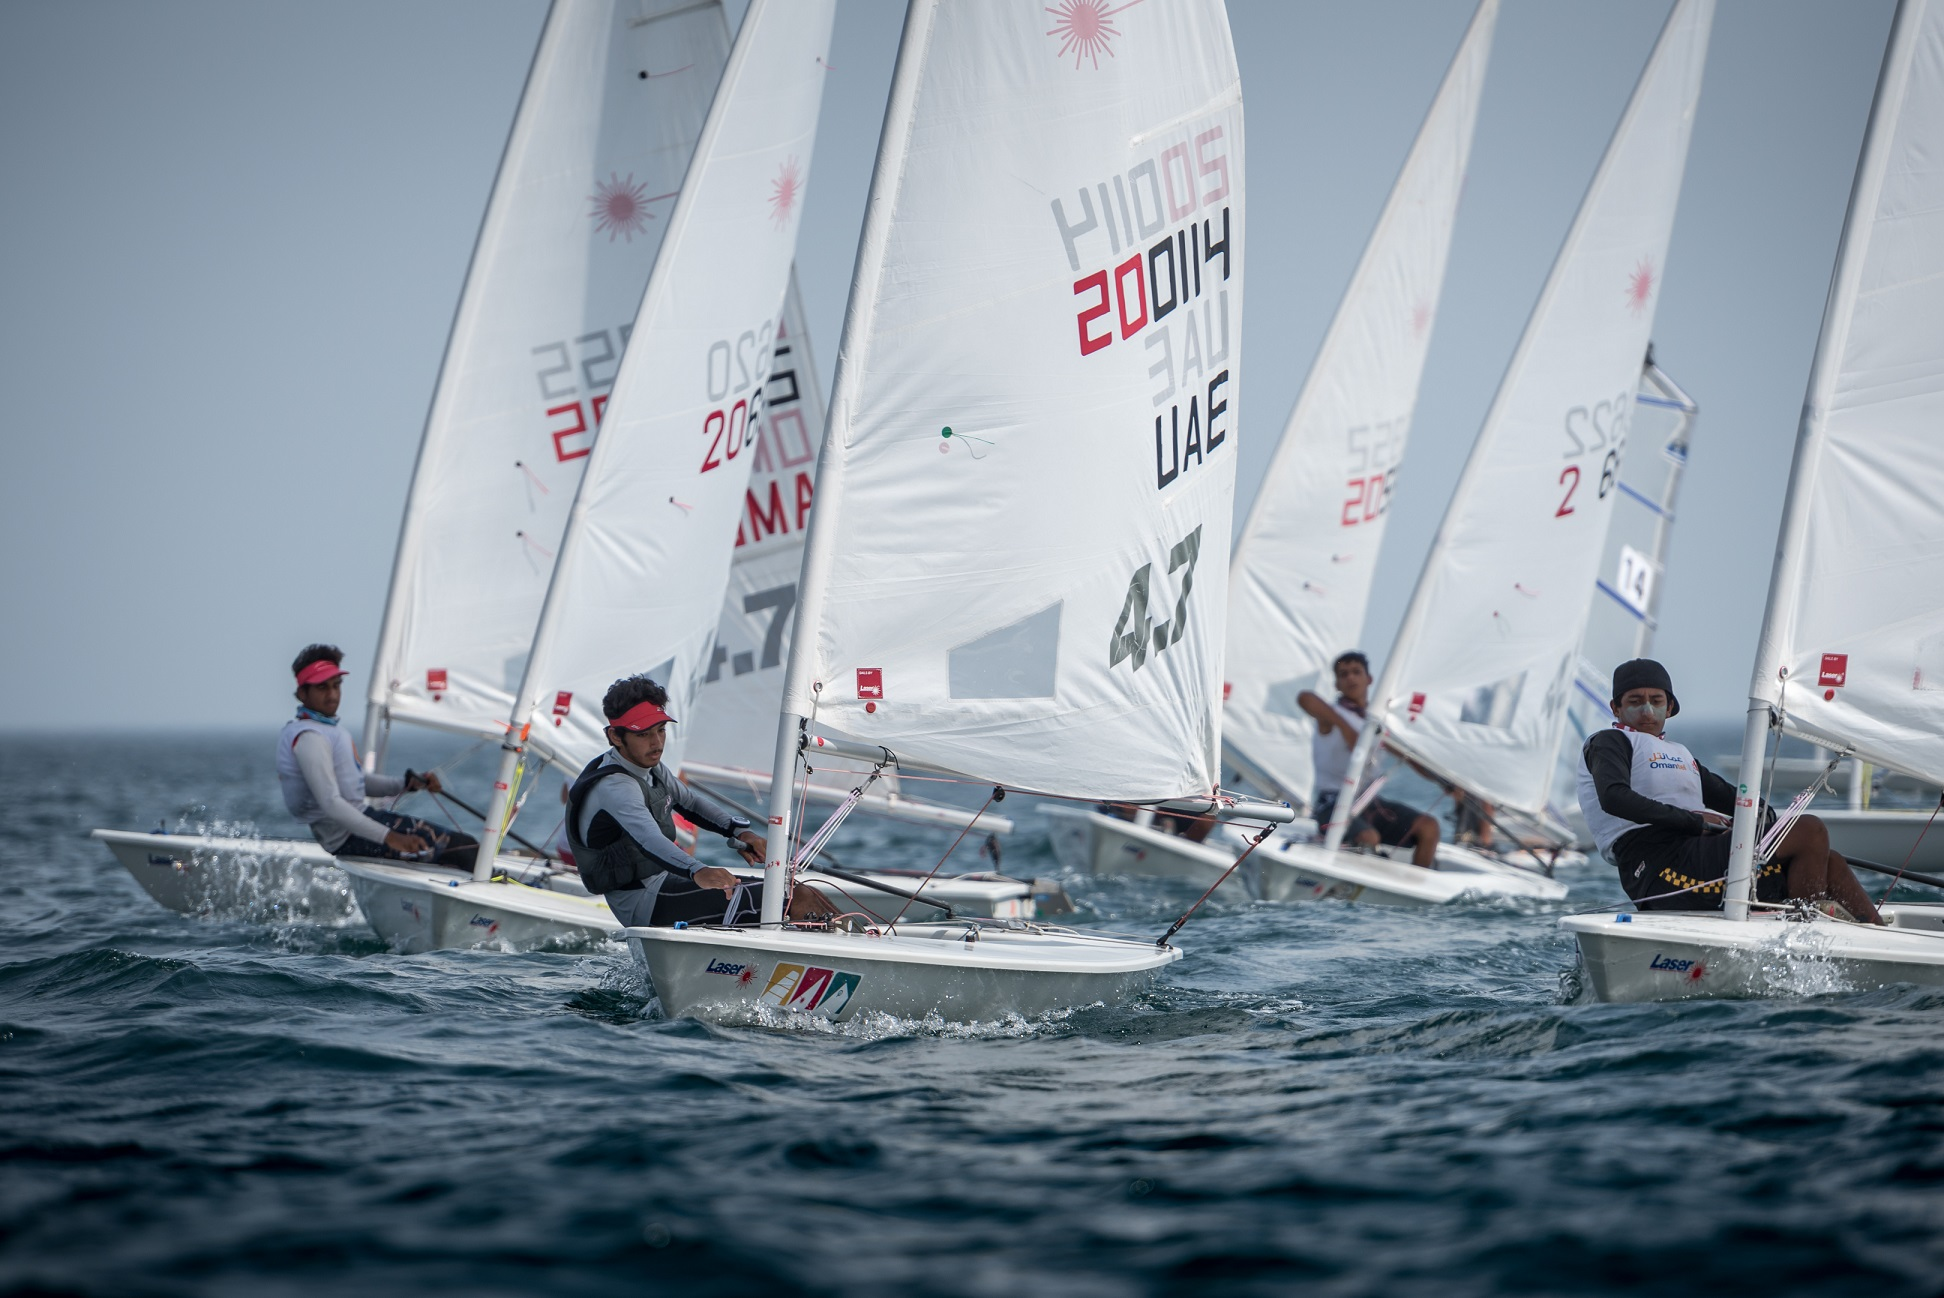 Omantel youth team is going for gold at Laser 4.7 Youth World Championships in Poland